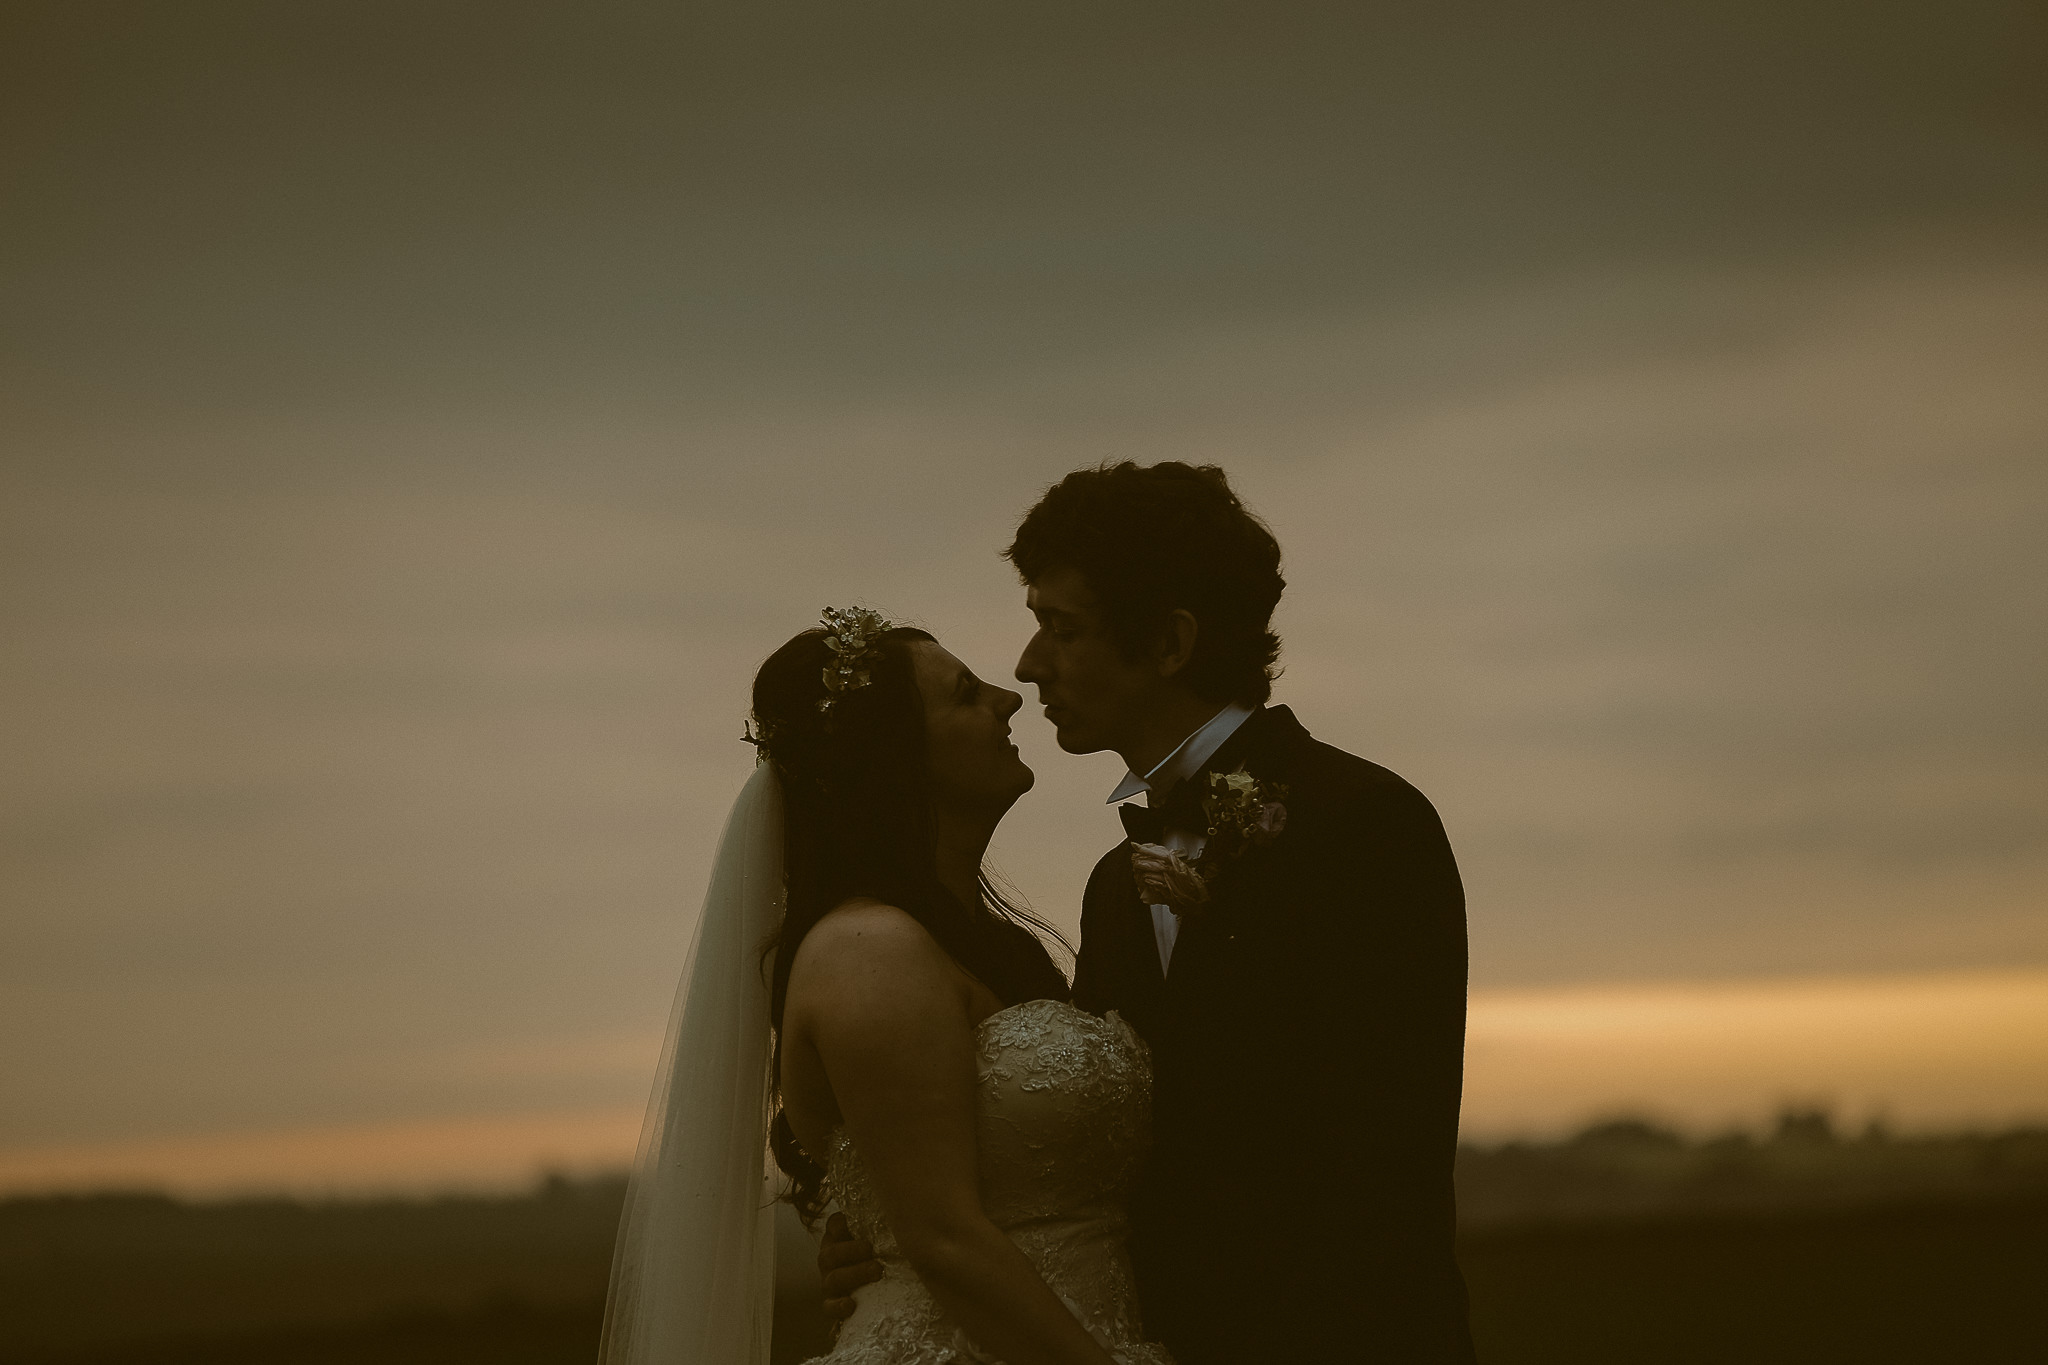 Bride and groom look into each others eyes with a golden sunset behind